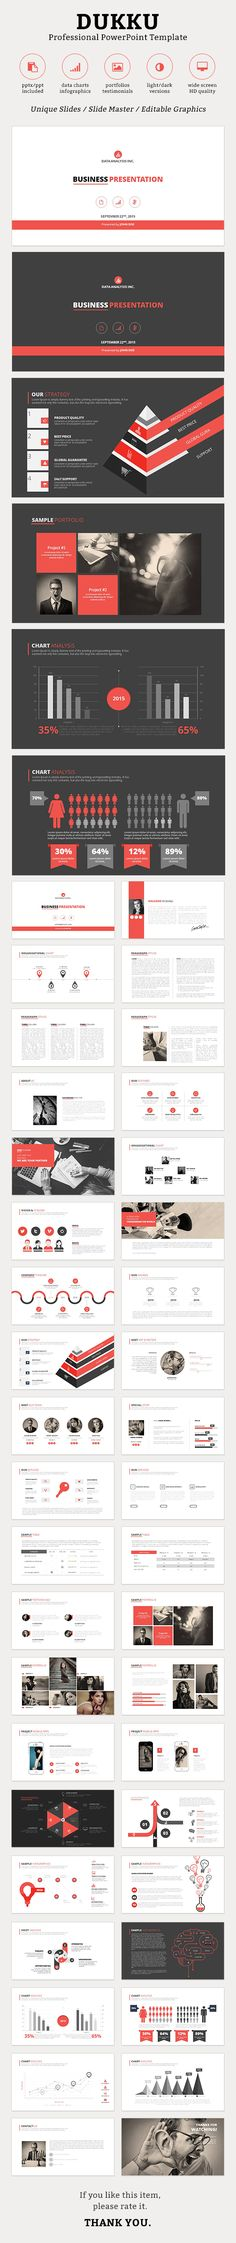 Dukku PowerPoint Template #design #slides Download: http://graphicriver.net/item/dukku-powerpoint-template/13057919?ref=ksioks